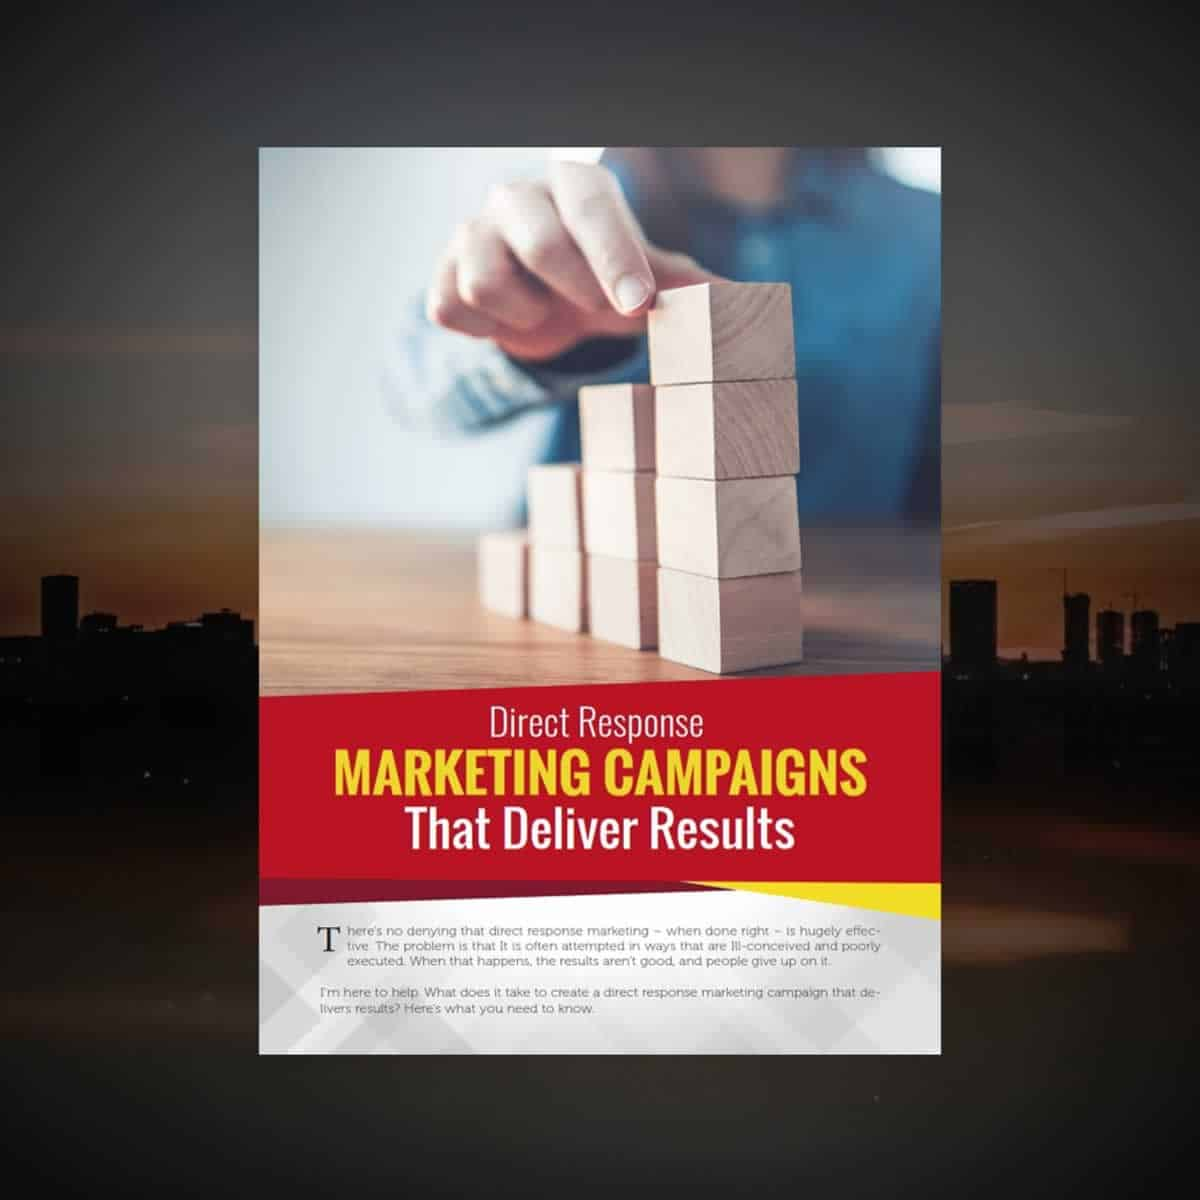 Direct Response Marketing Campaigns